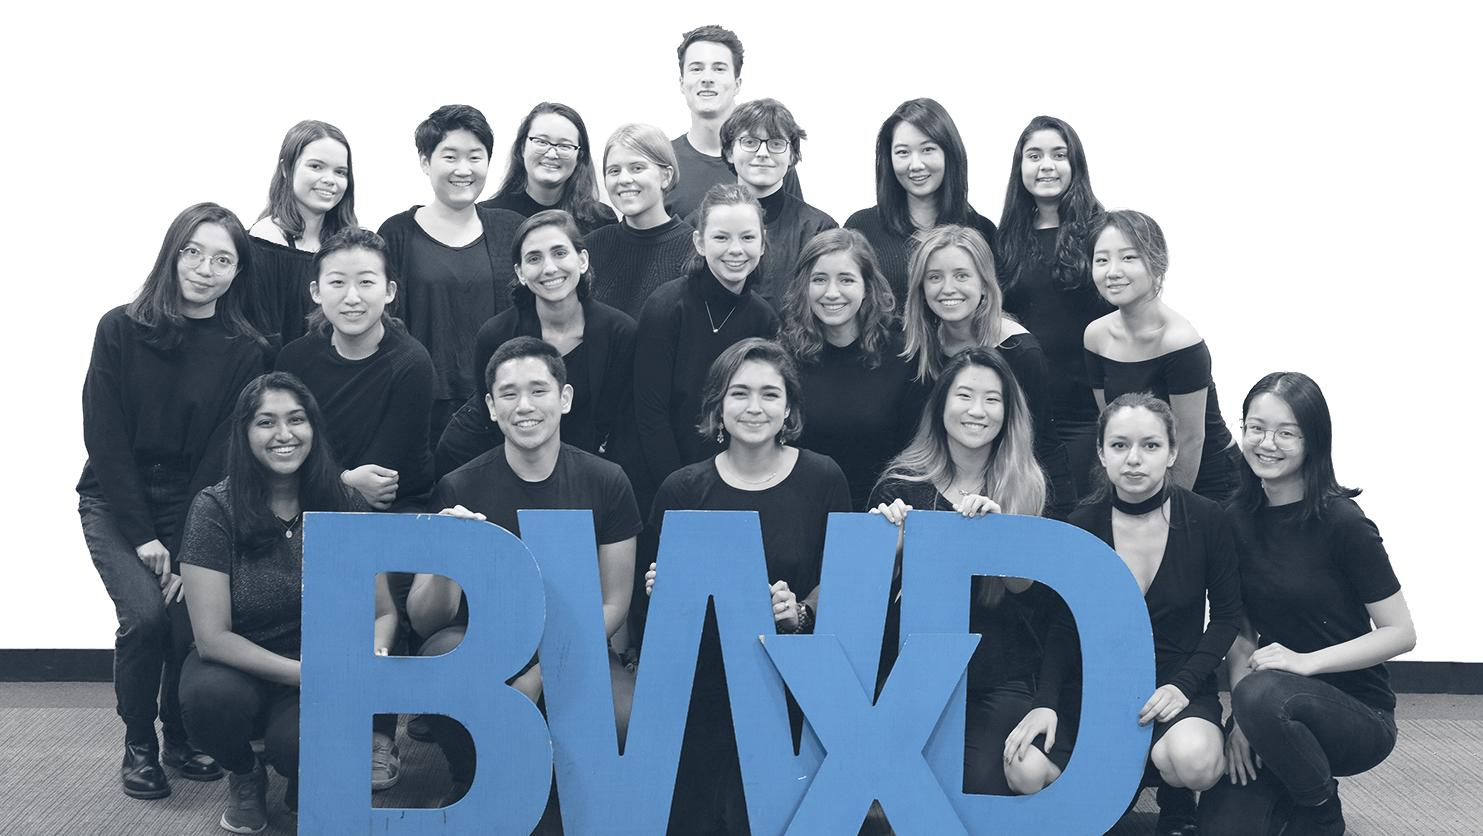 Students at the Better World by Design conference pose with blue BWxD cutout letters